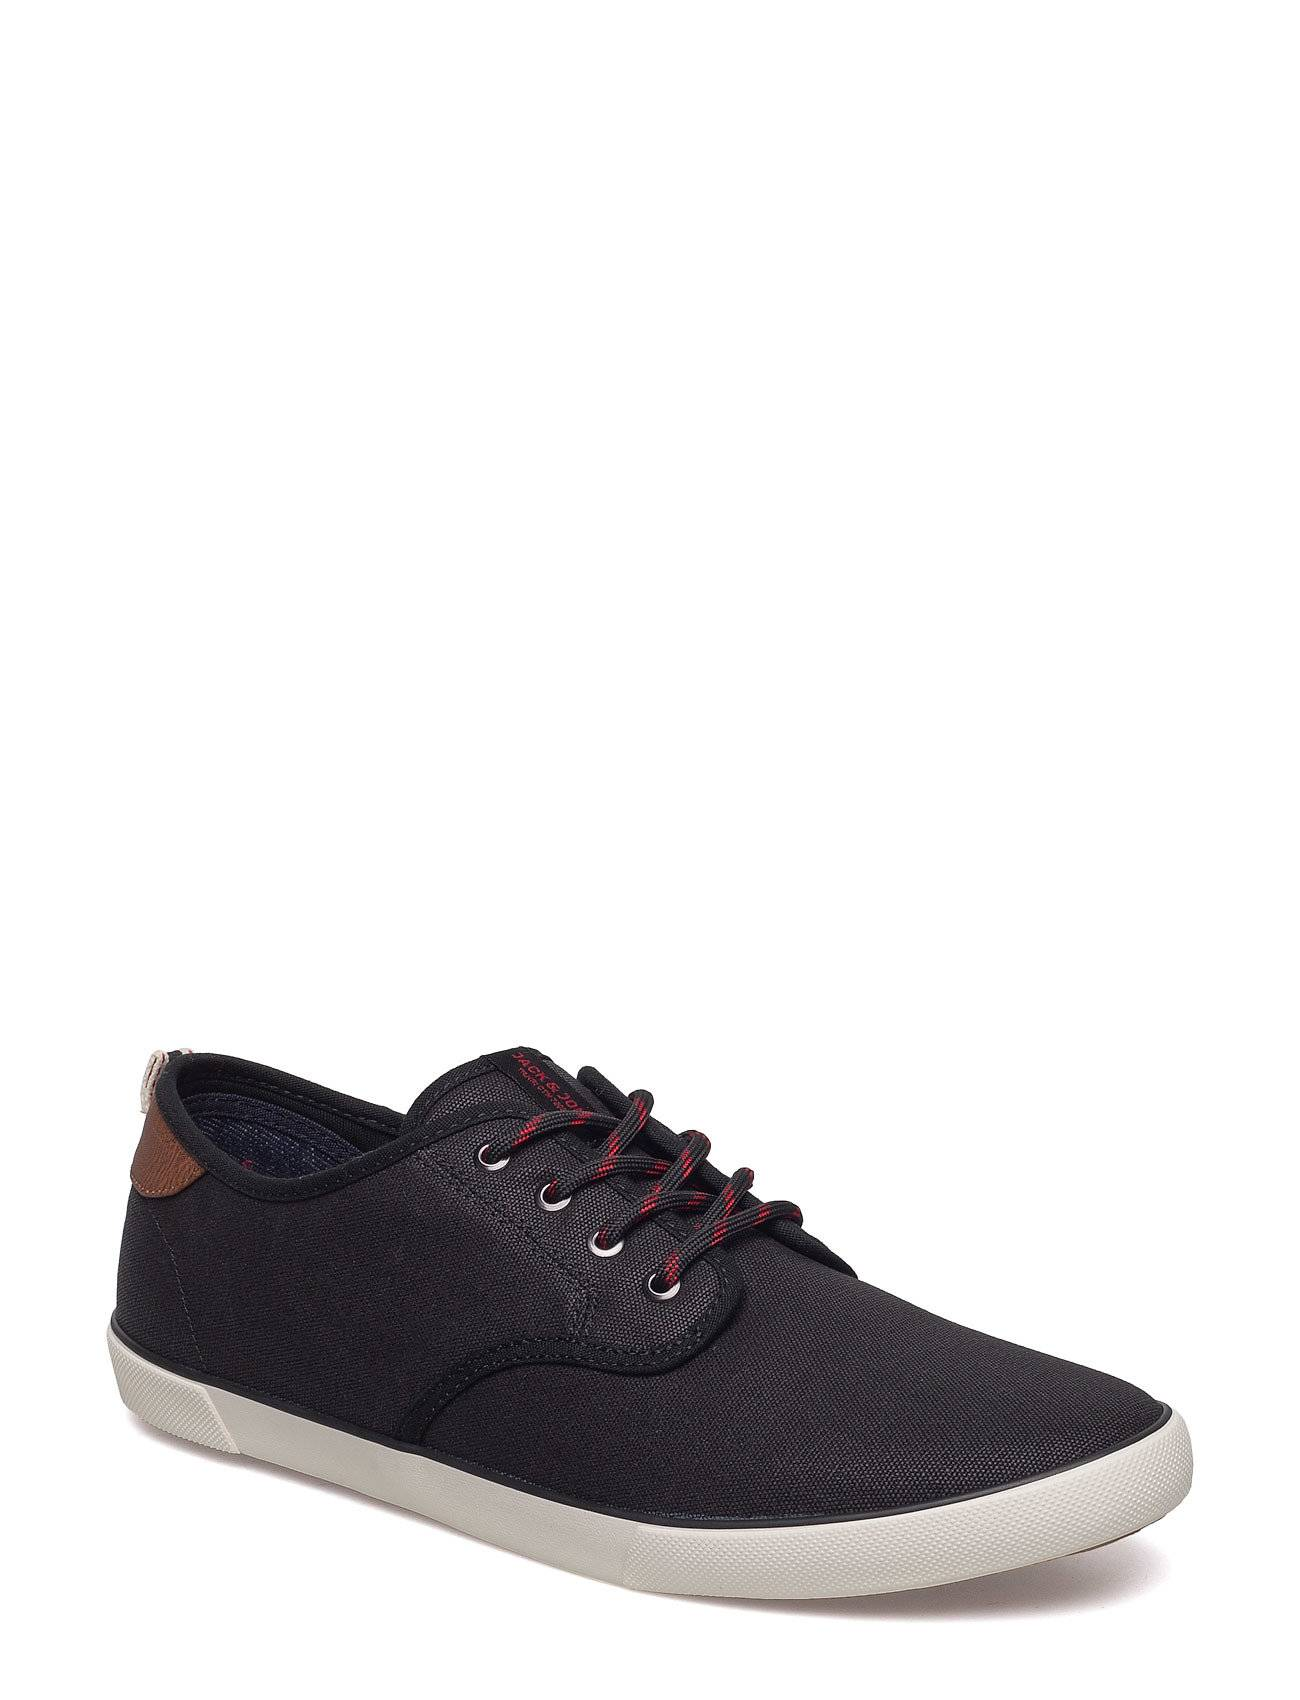 Jack & Jones Jfwtack Waxed Canvas Anthracite